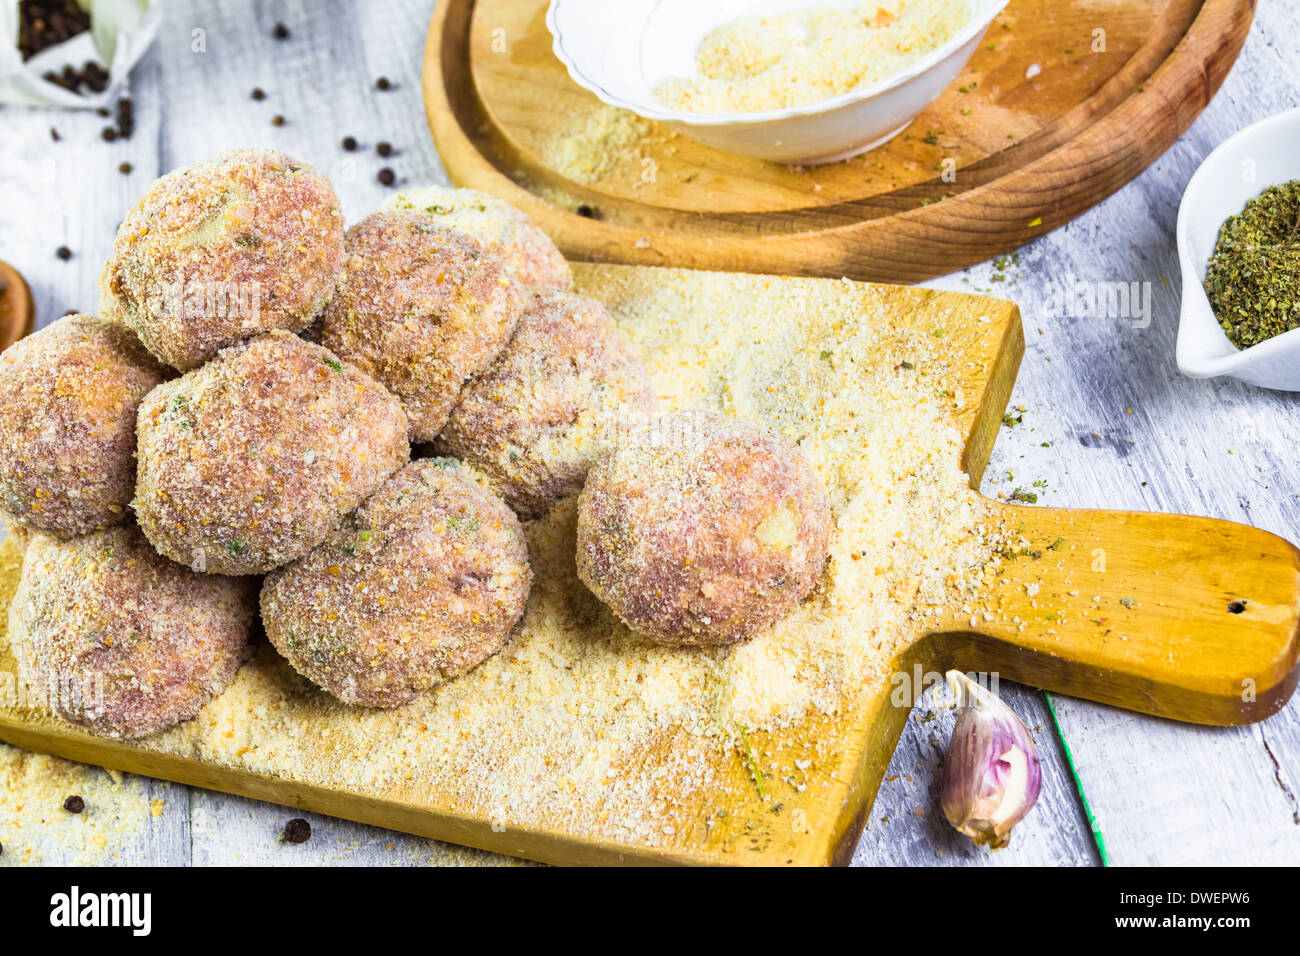 Raw meat balls of minced beef with rolled in breadcrumbs - Stock Image